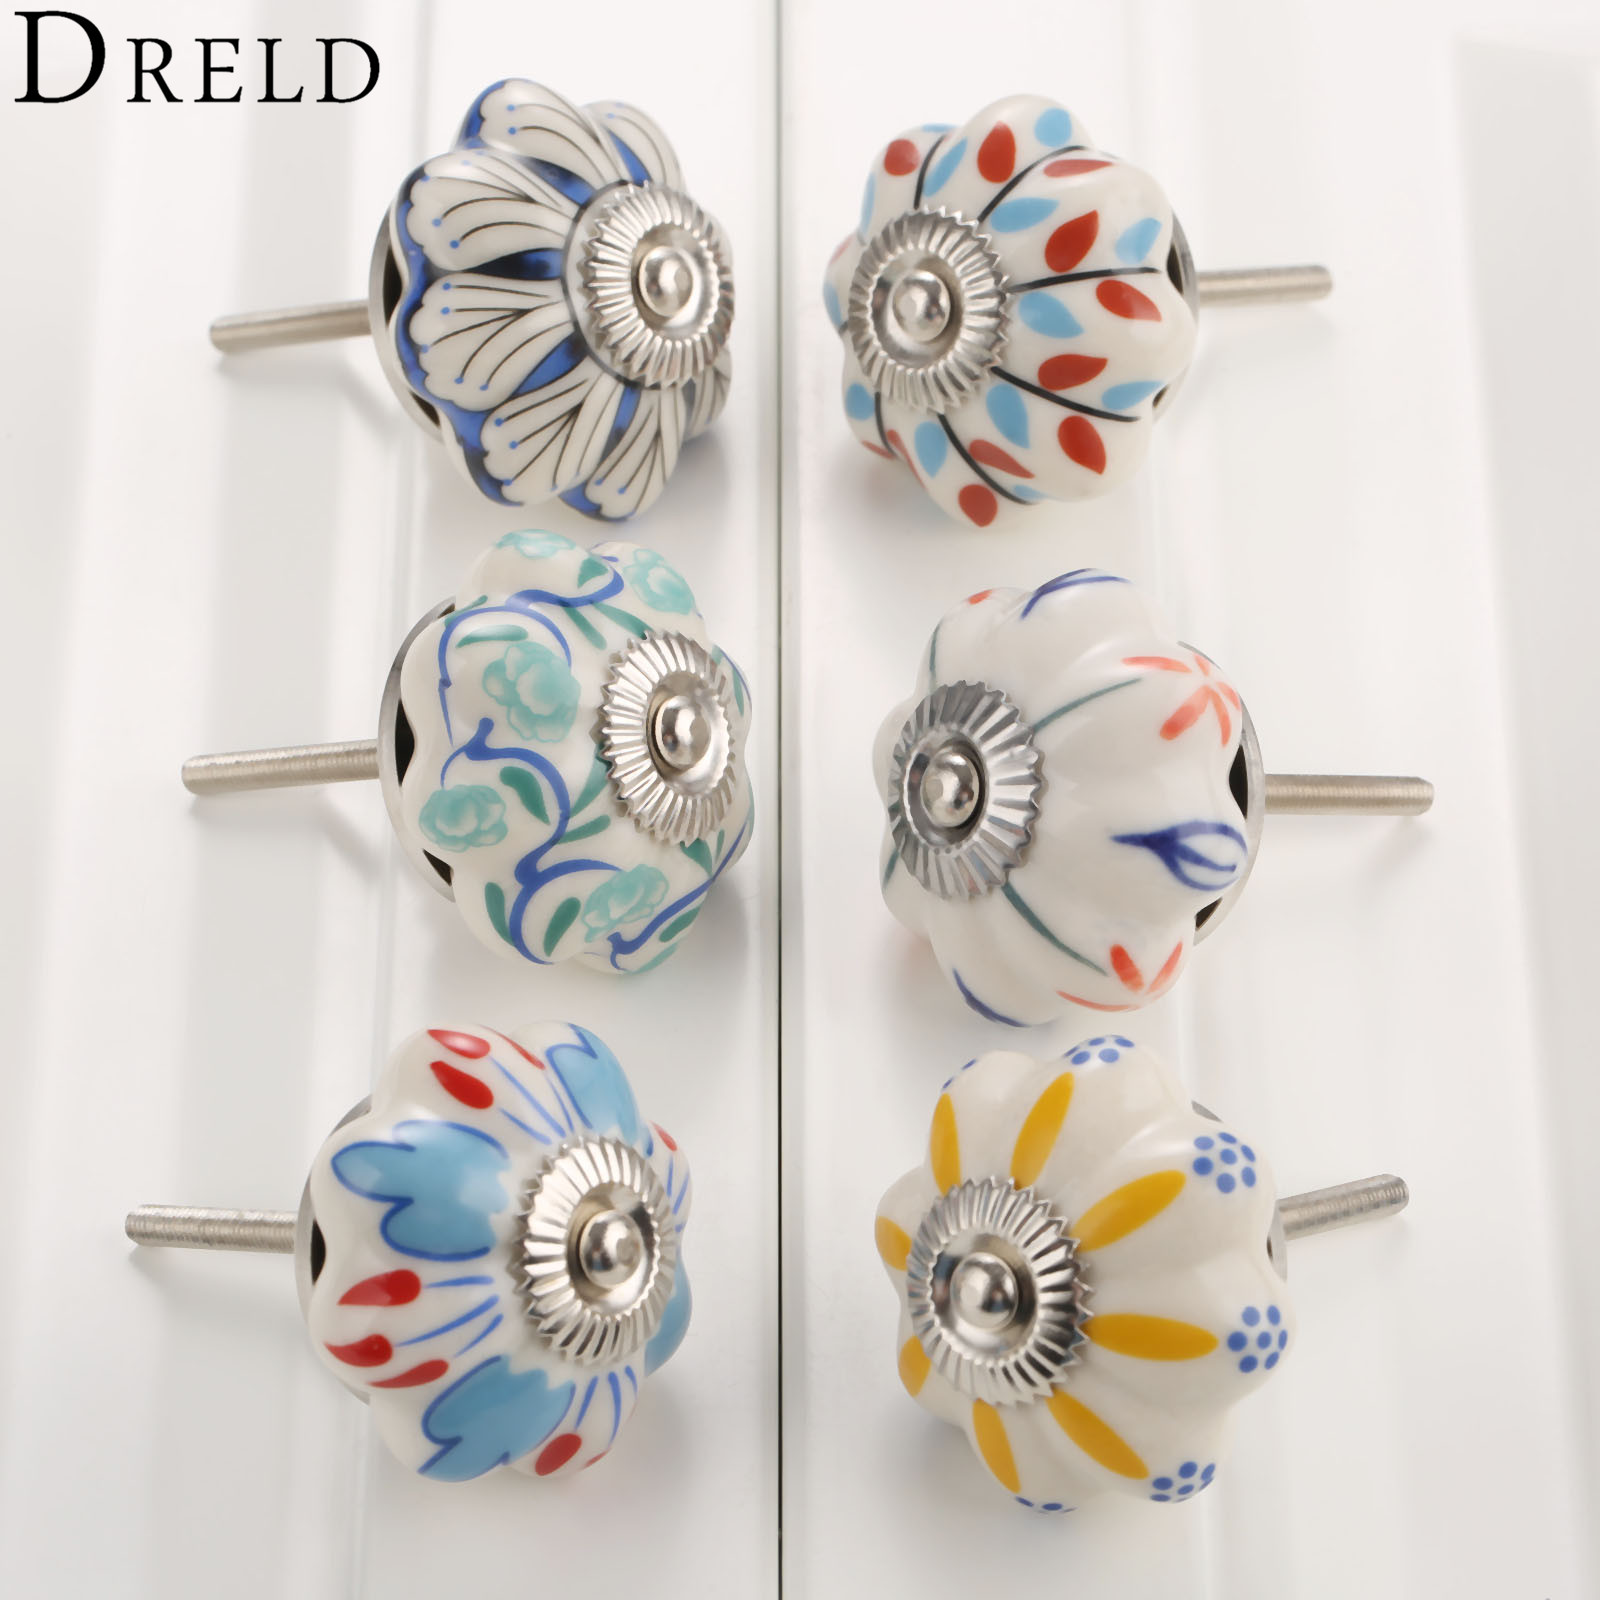 DRELD 40mm Furniture Handle Ceramic Drawer Cabinet Knobs and Handles Knobs Door Cupboard Kitchen Pull Handles Furniture Hardware retro vintage kitchen drawer cabinet door flower handle furniture knobs hardware cupboard antique metal shell pull handles 1pc